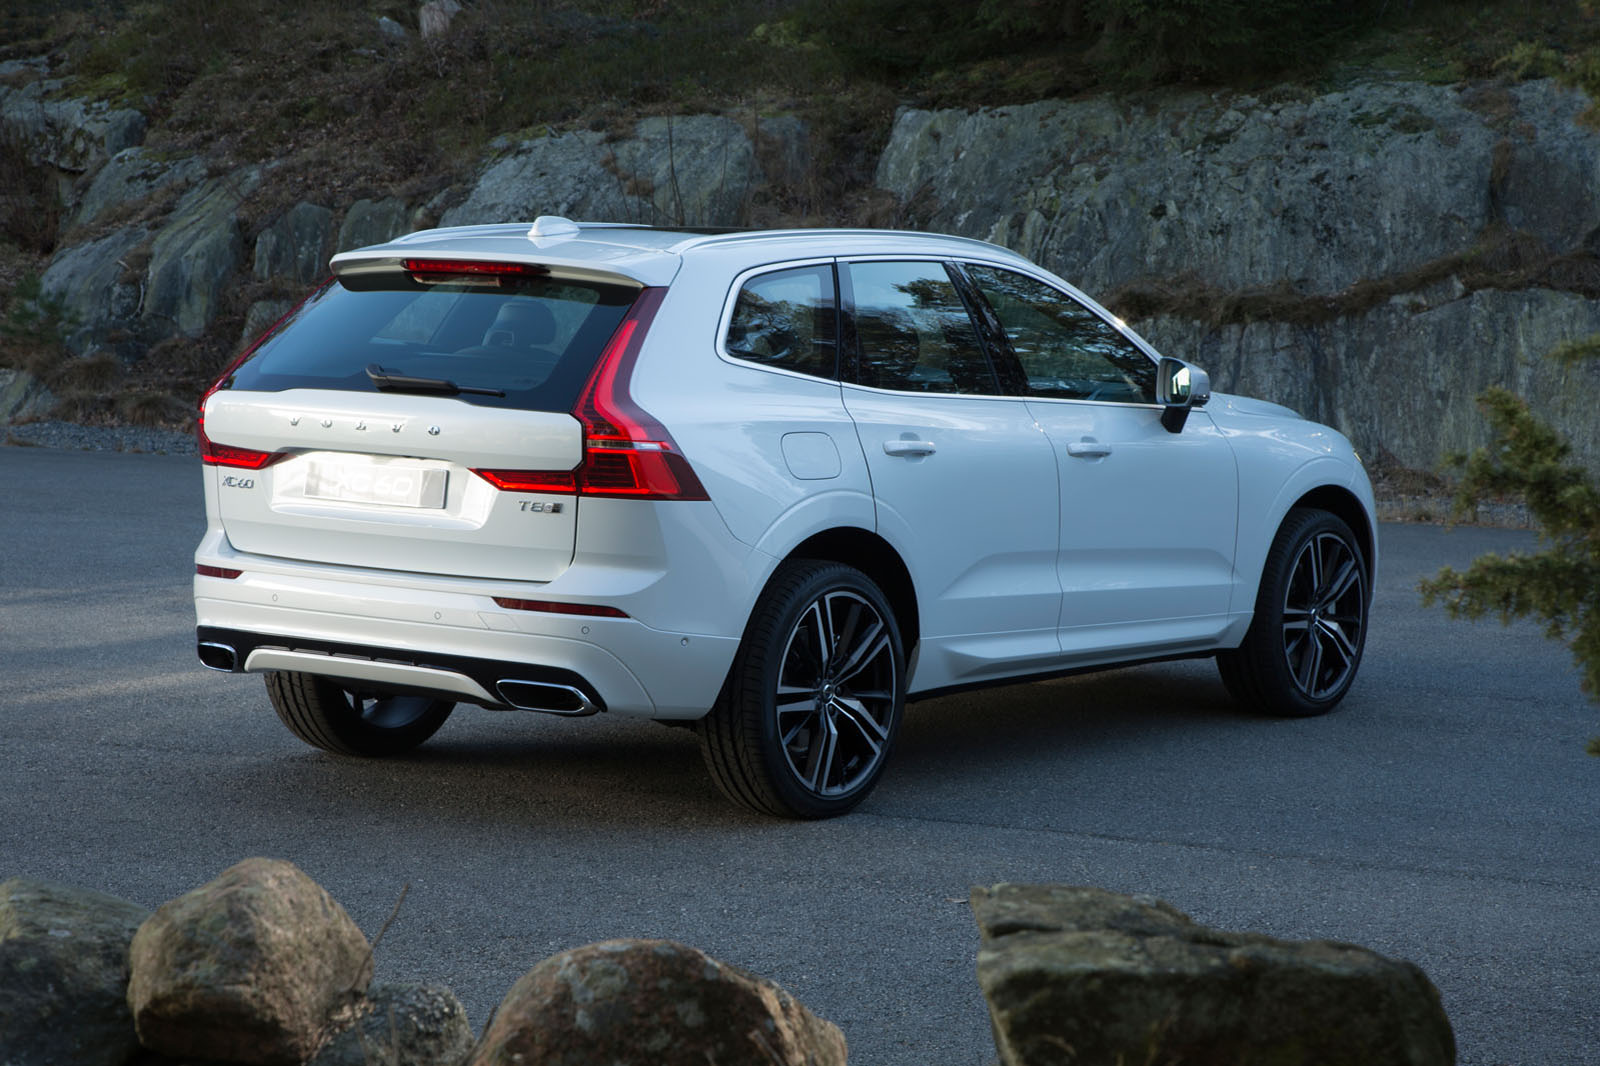 2017 Volvo Xc60 Set To Take On Jaguar F Pace Autocar